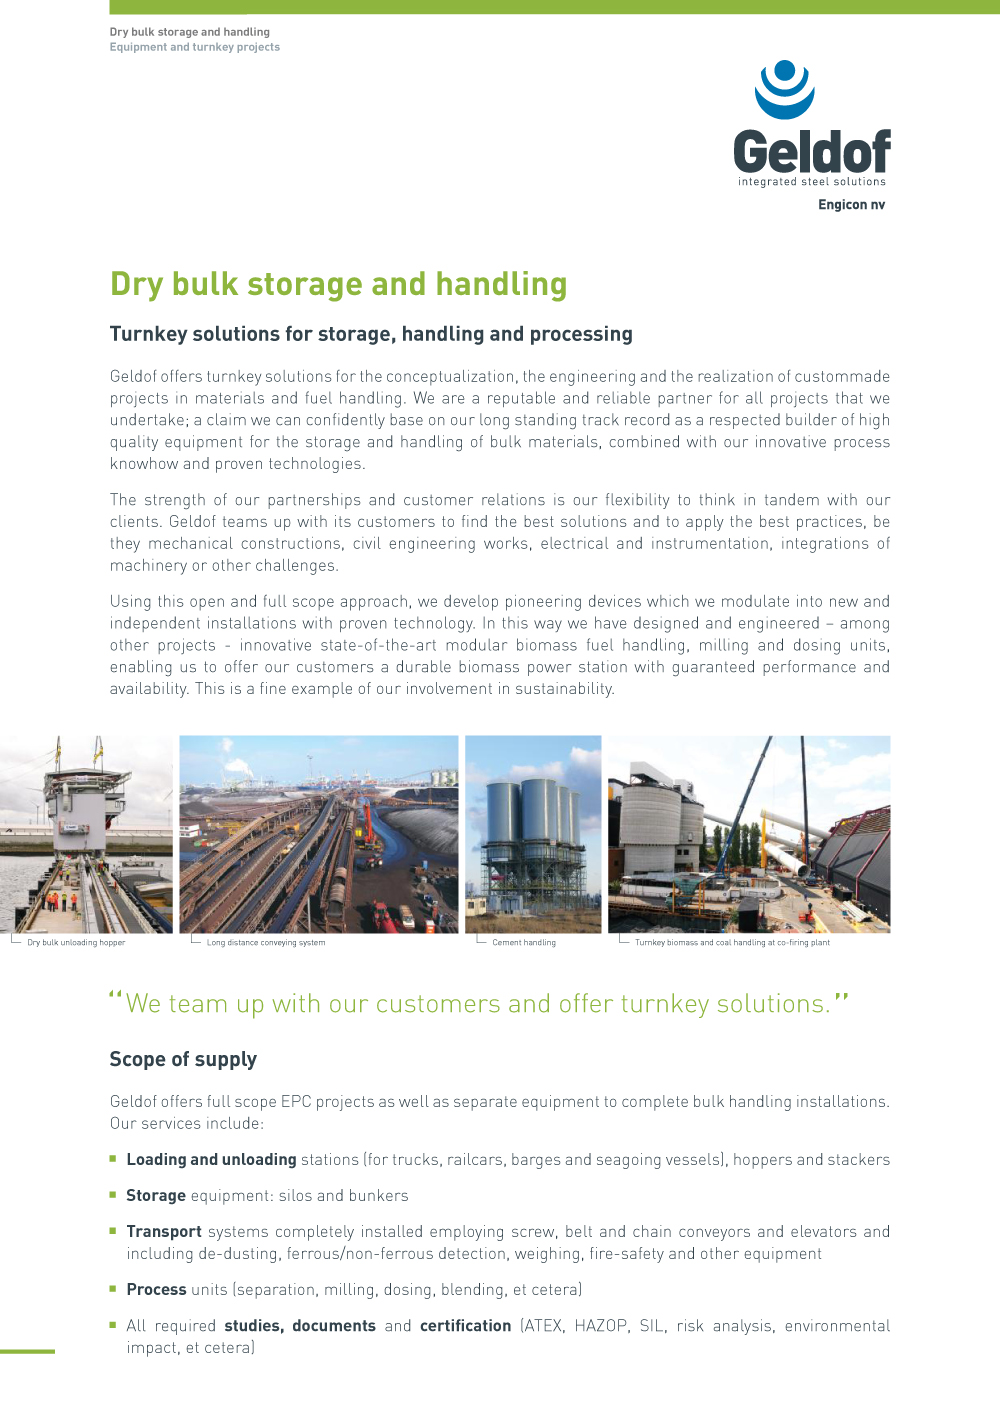 Geldof - Flyer - DB - Dry bulk storage and handling - EN